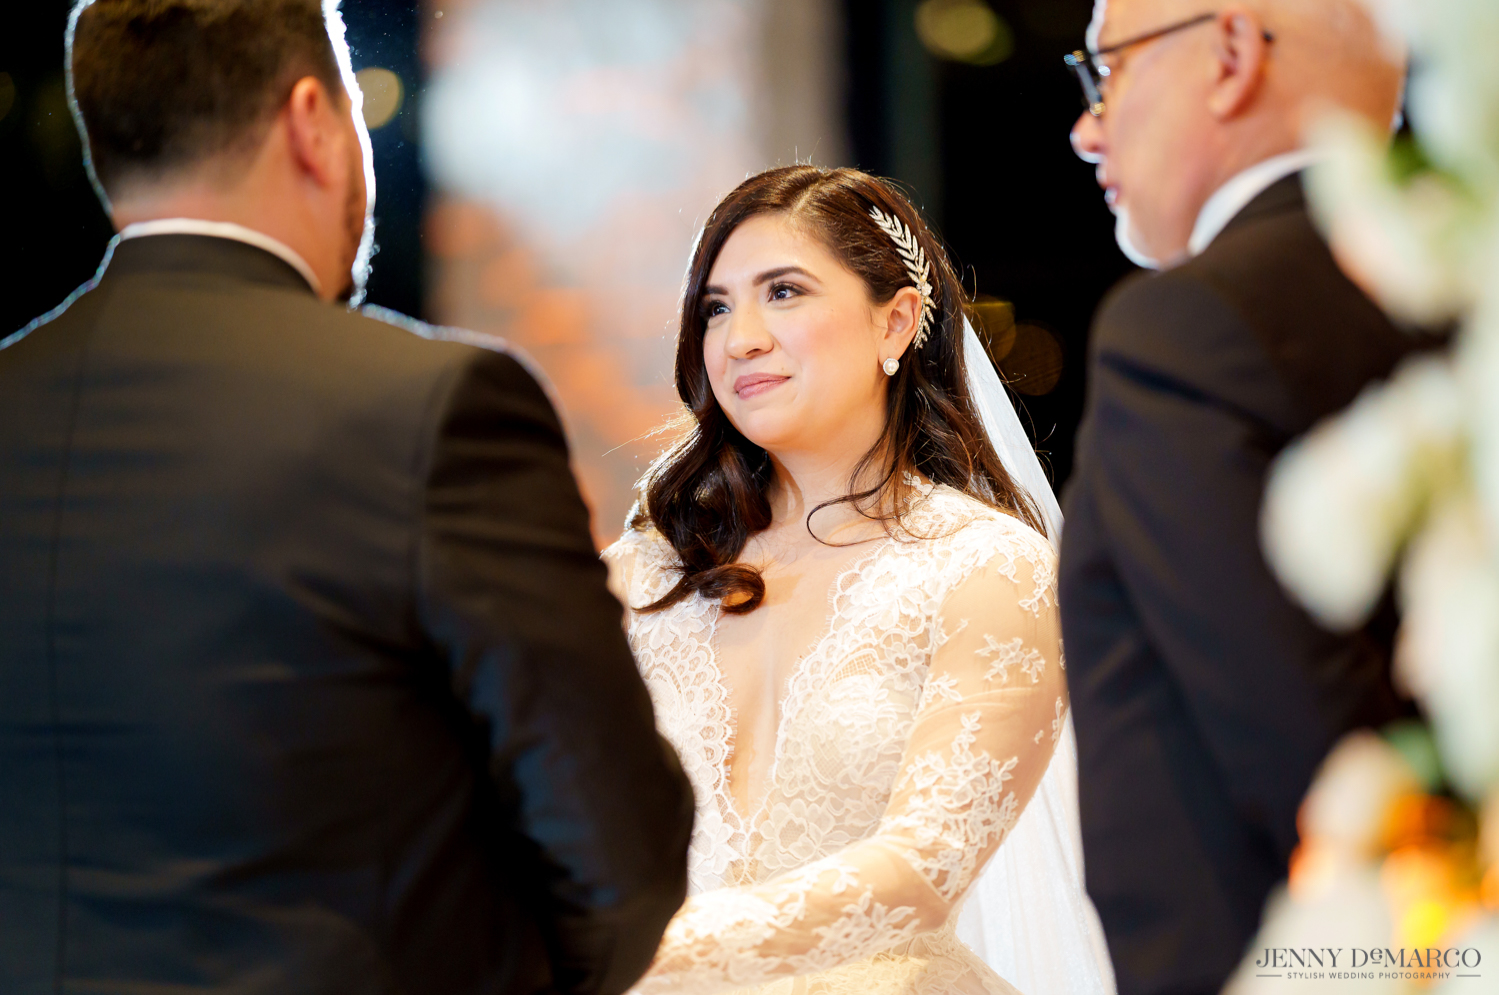 the bride looking lovingly at her groom